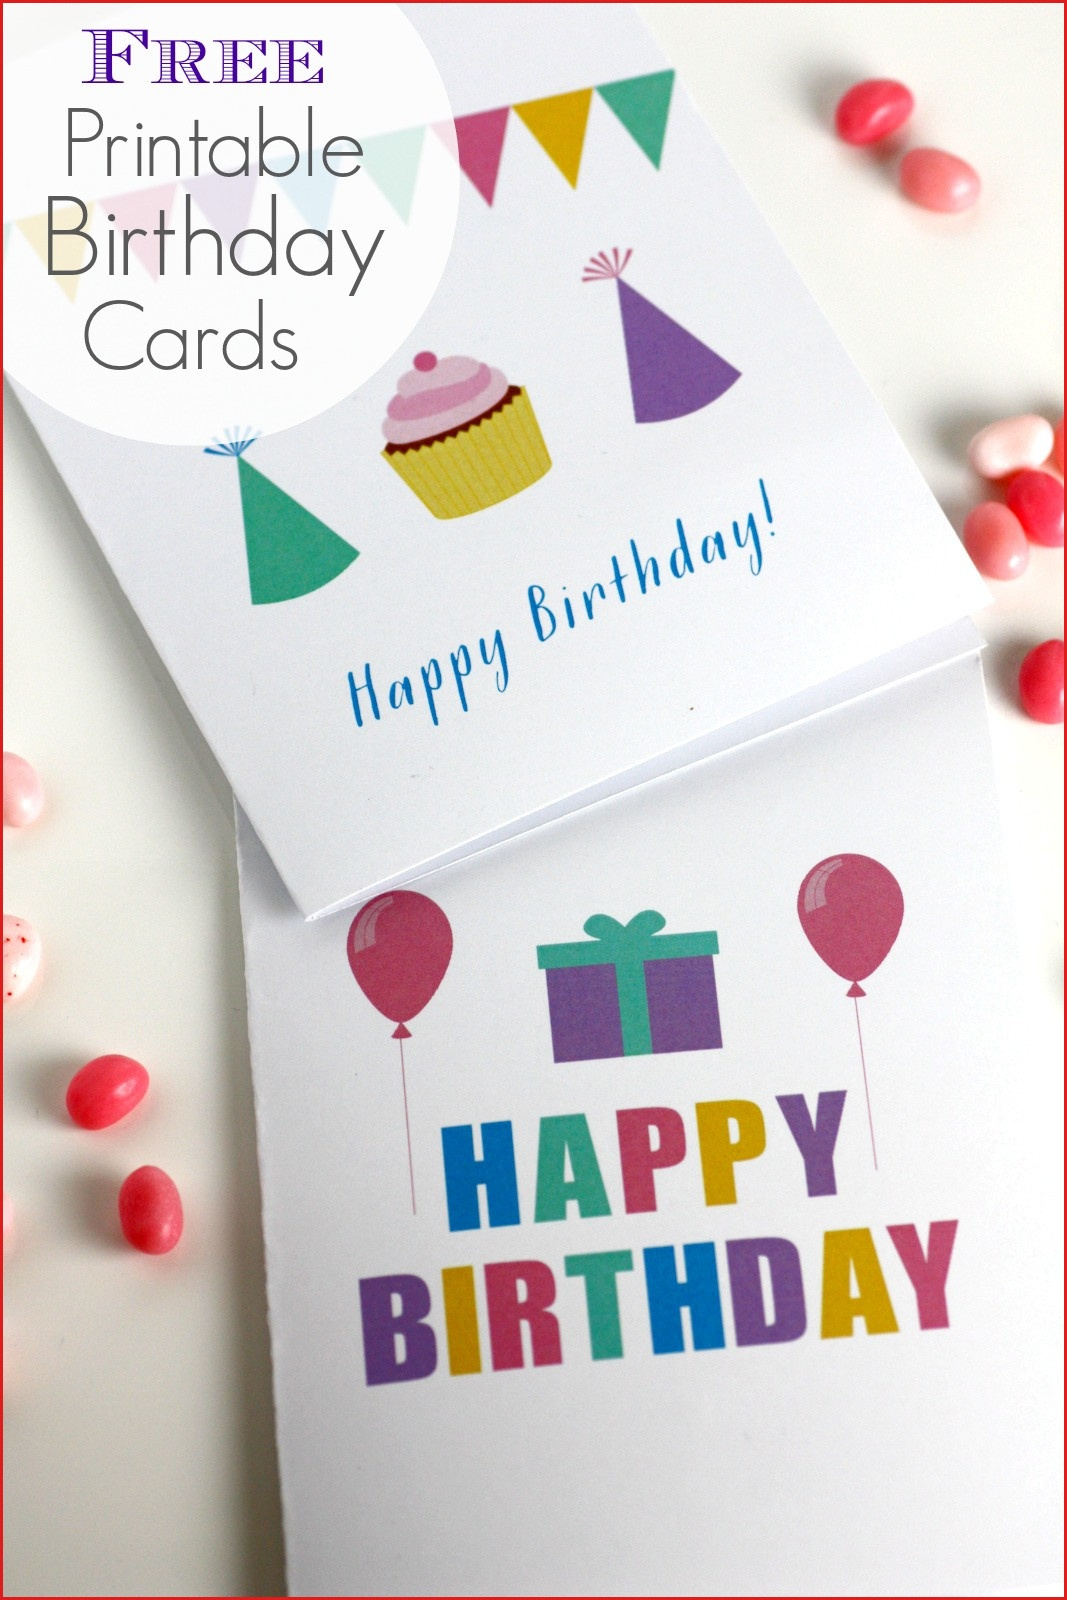 Free Printable Birthday Card 8 Best Images Of Free Printable - Free Printable Birthday Cards For Dad